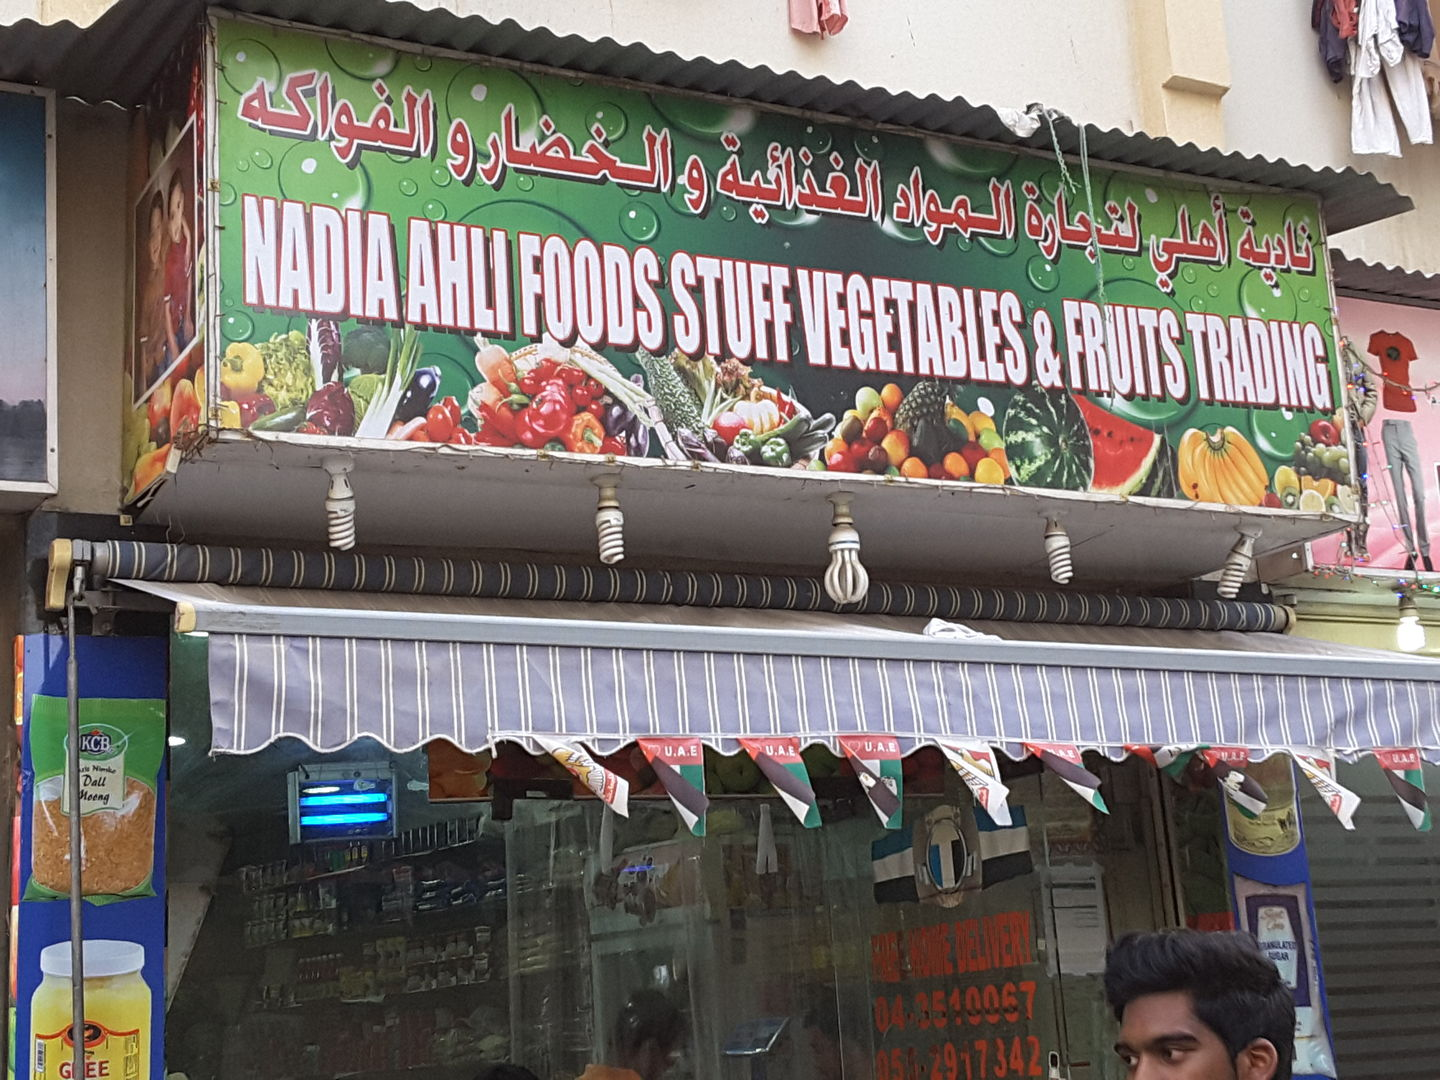 HiDubai-business-nadia-ahli-foodstuff-vegetables-fruits-trading-shopping-supermarkets-hypermarkets-grocery-stores-meena-bazar-al-souq-al-kabeer-dubai-2